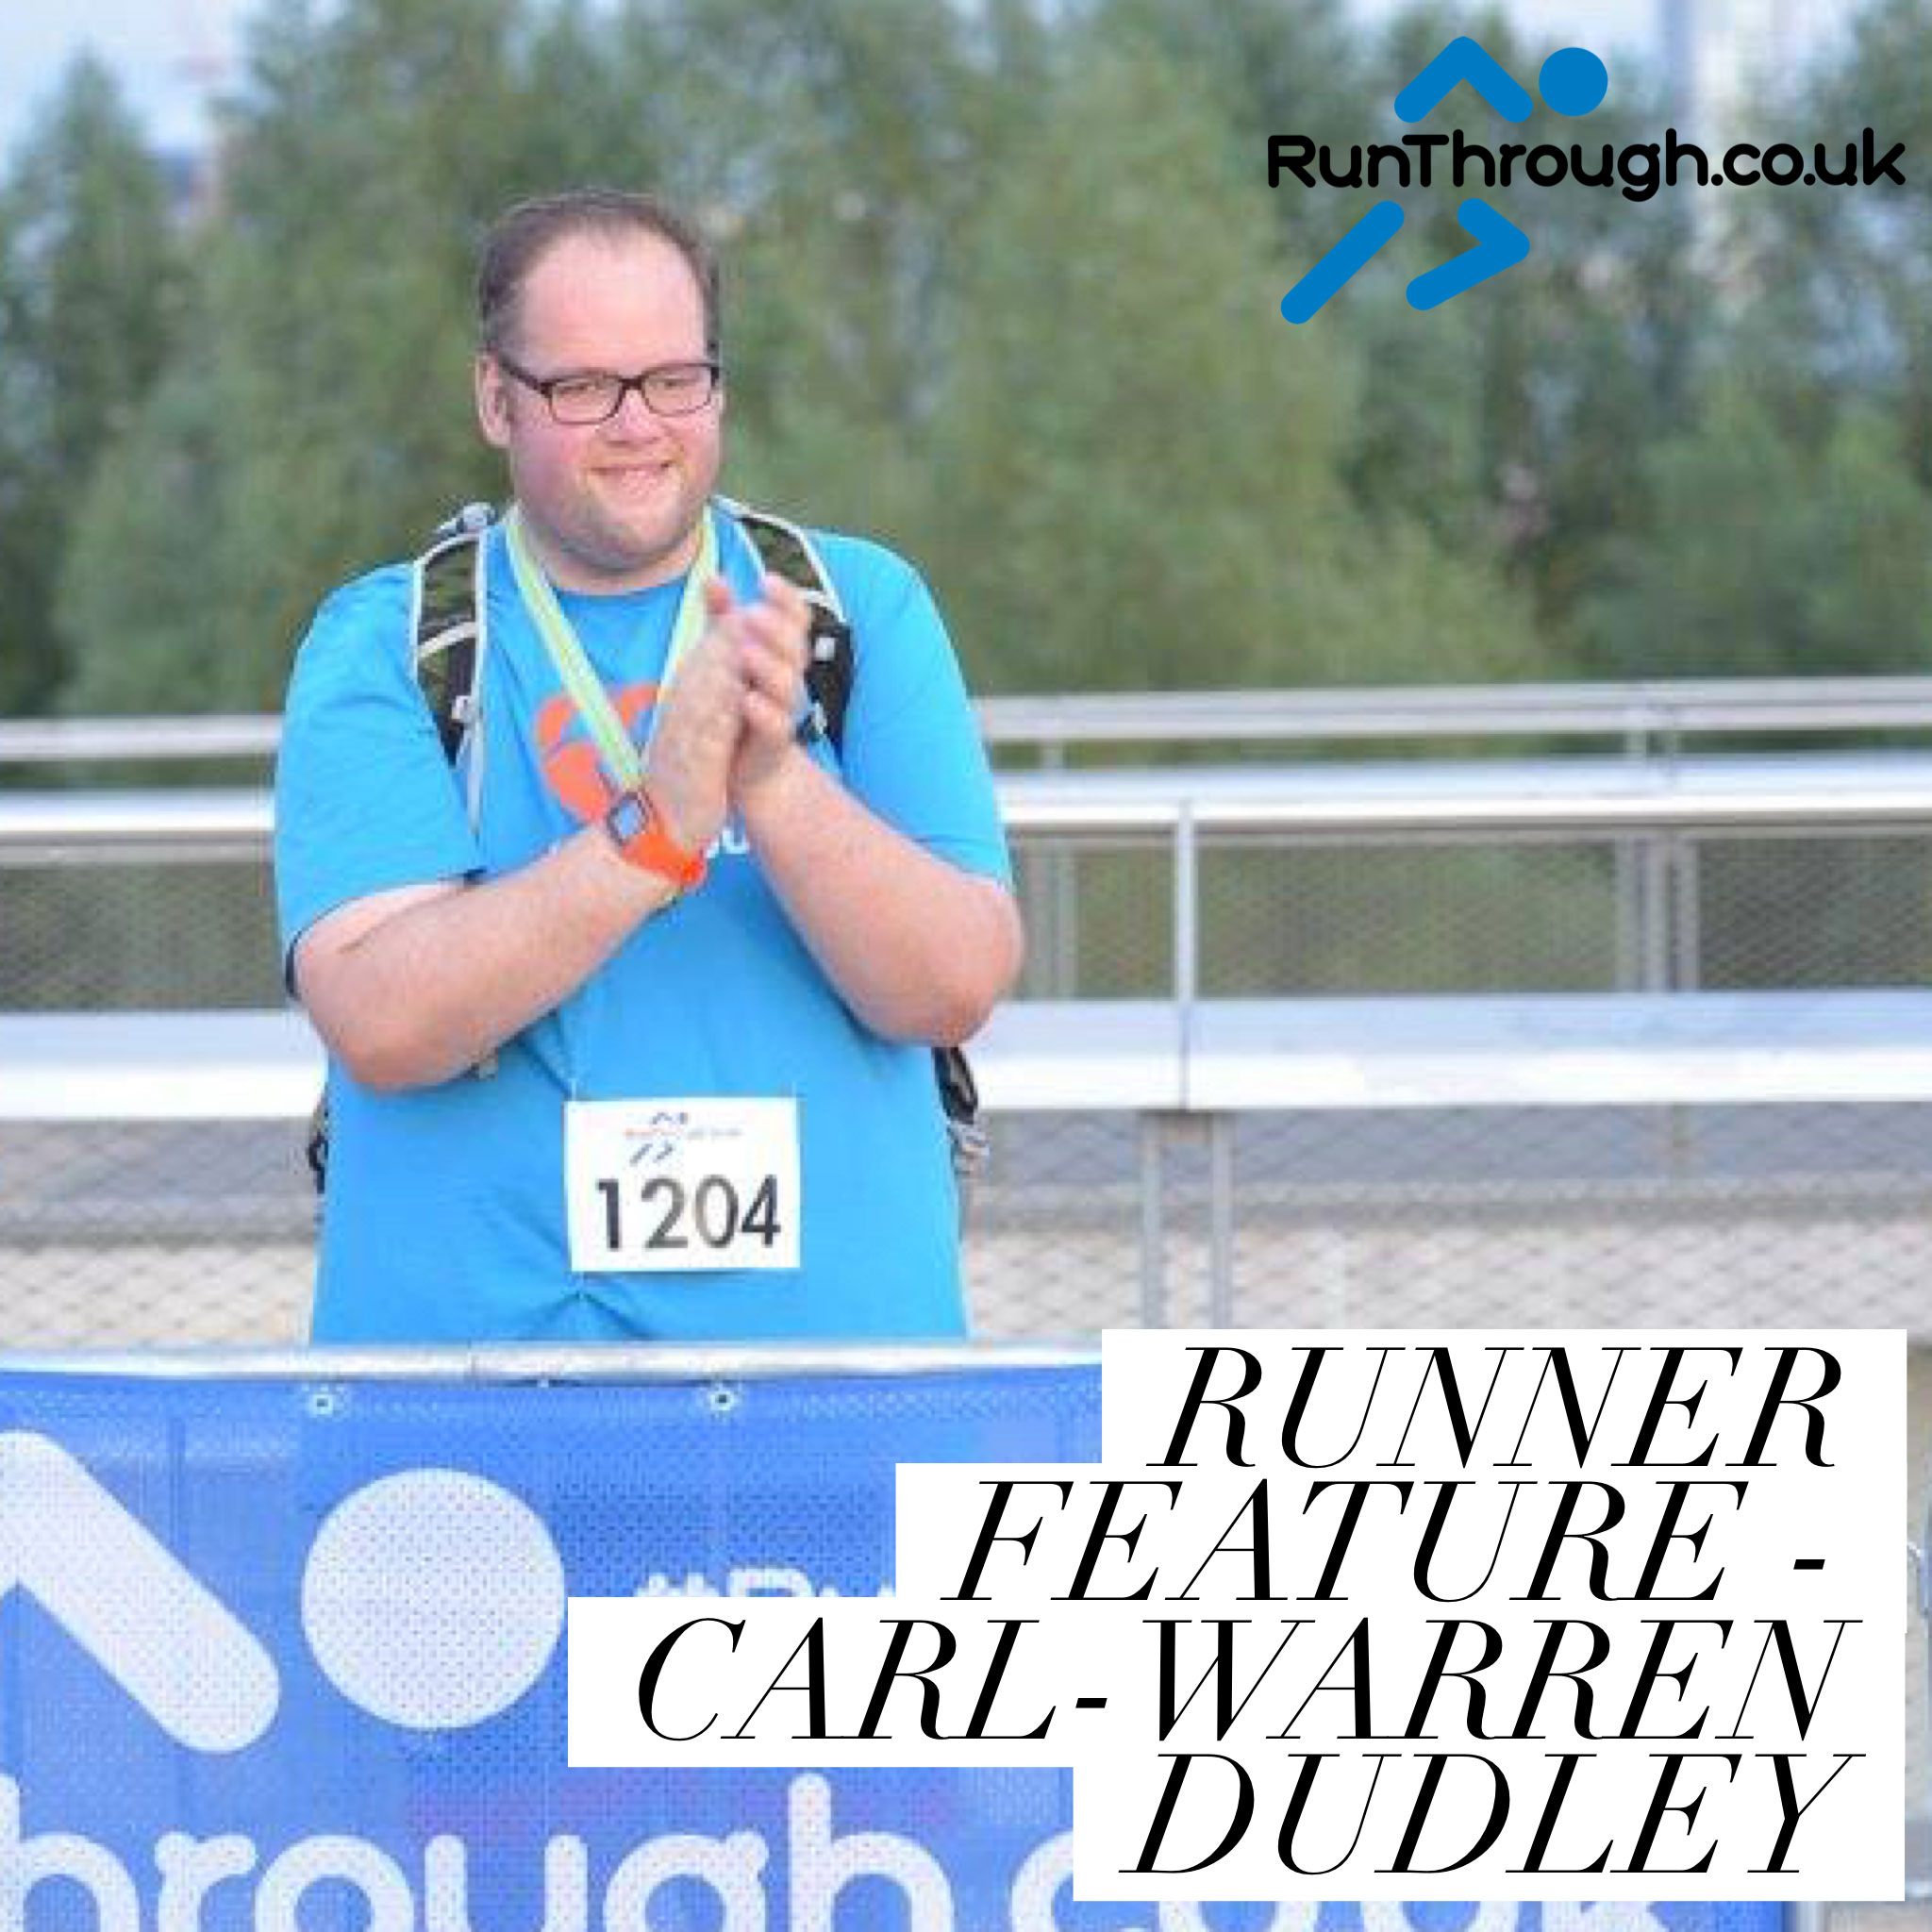 Runner Feature – Carl-Warren Dudley